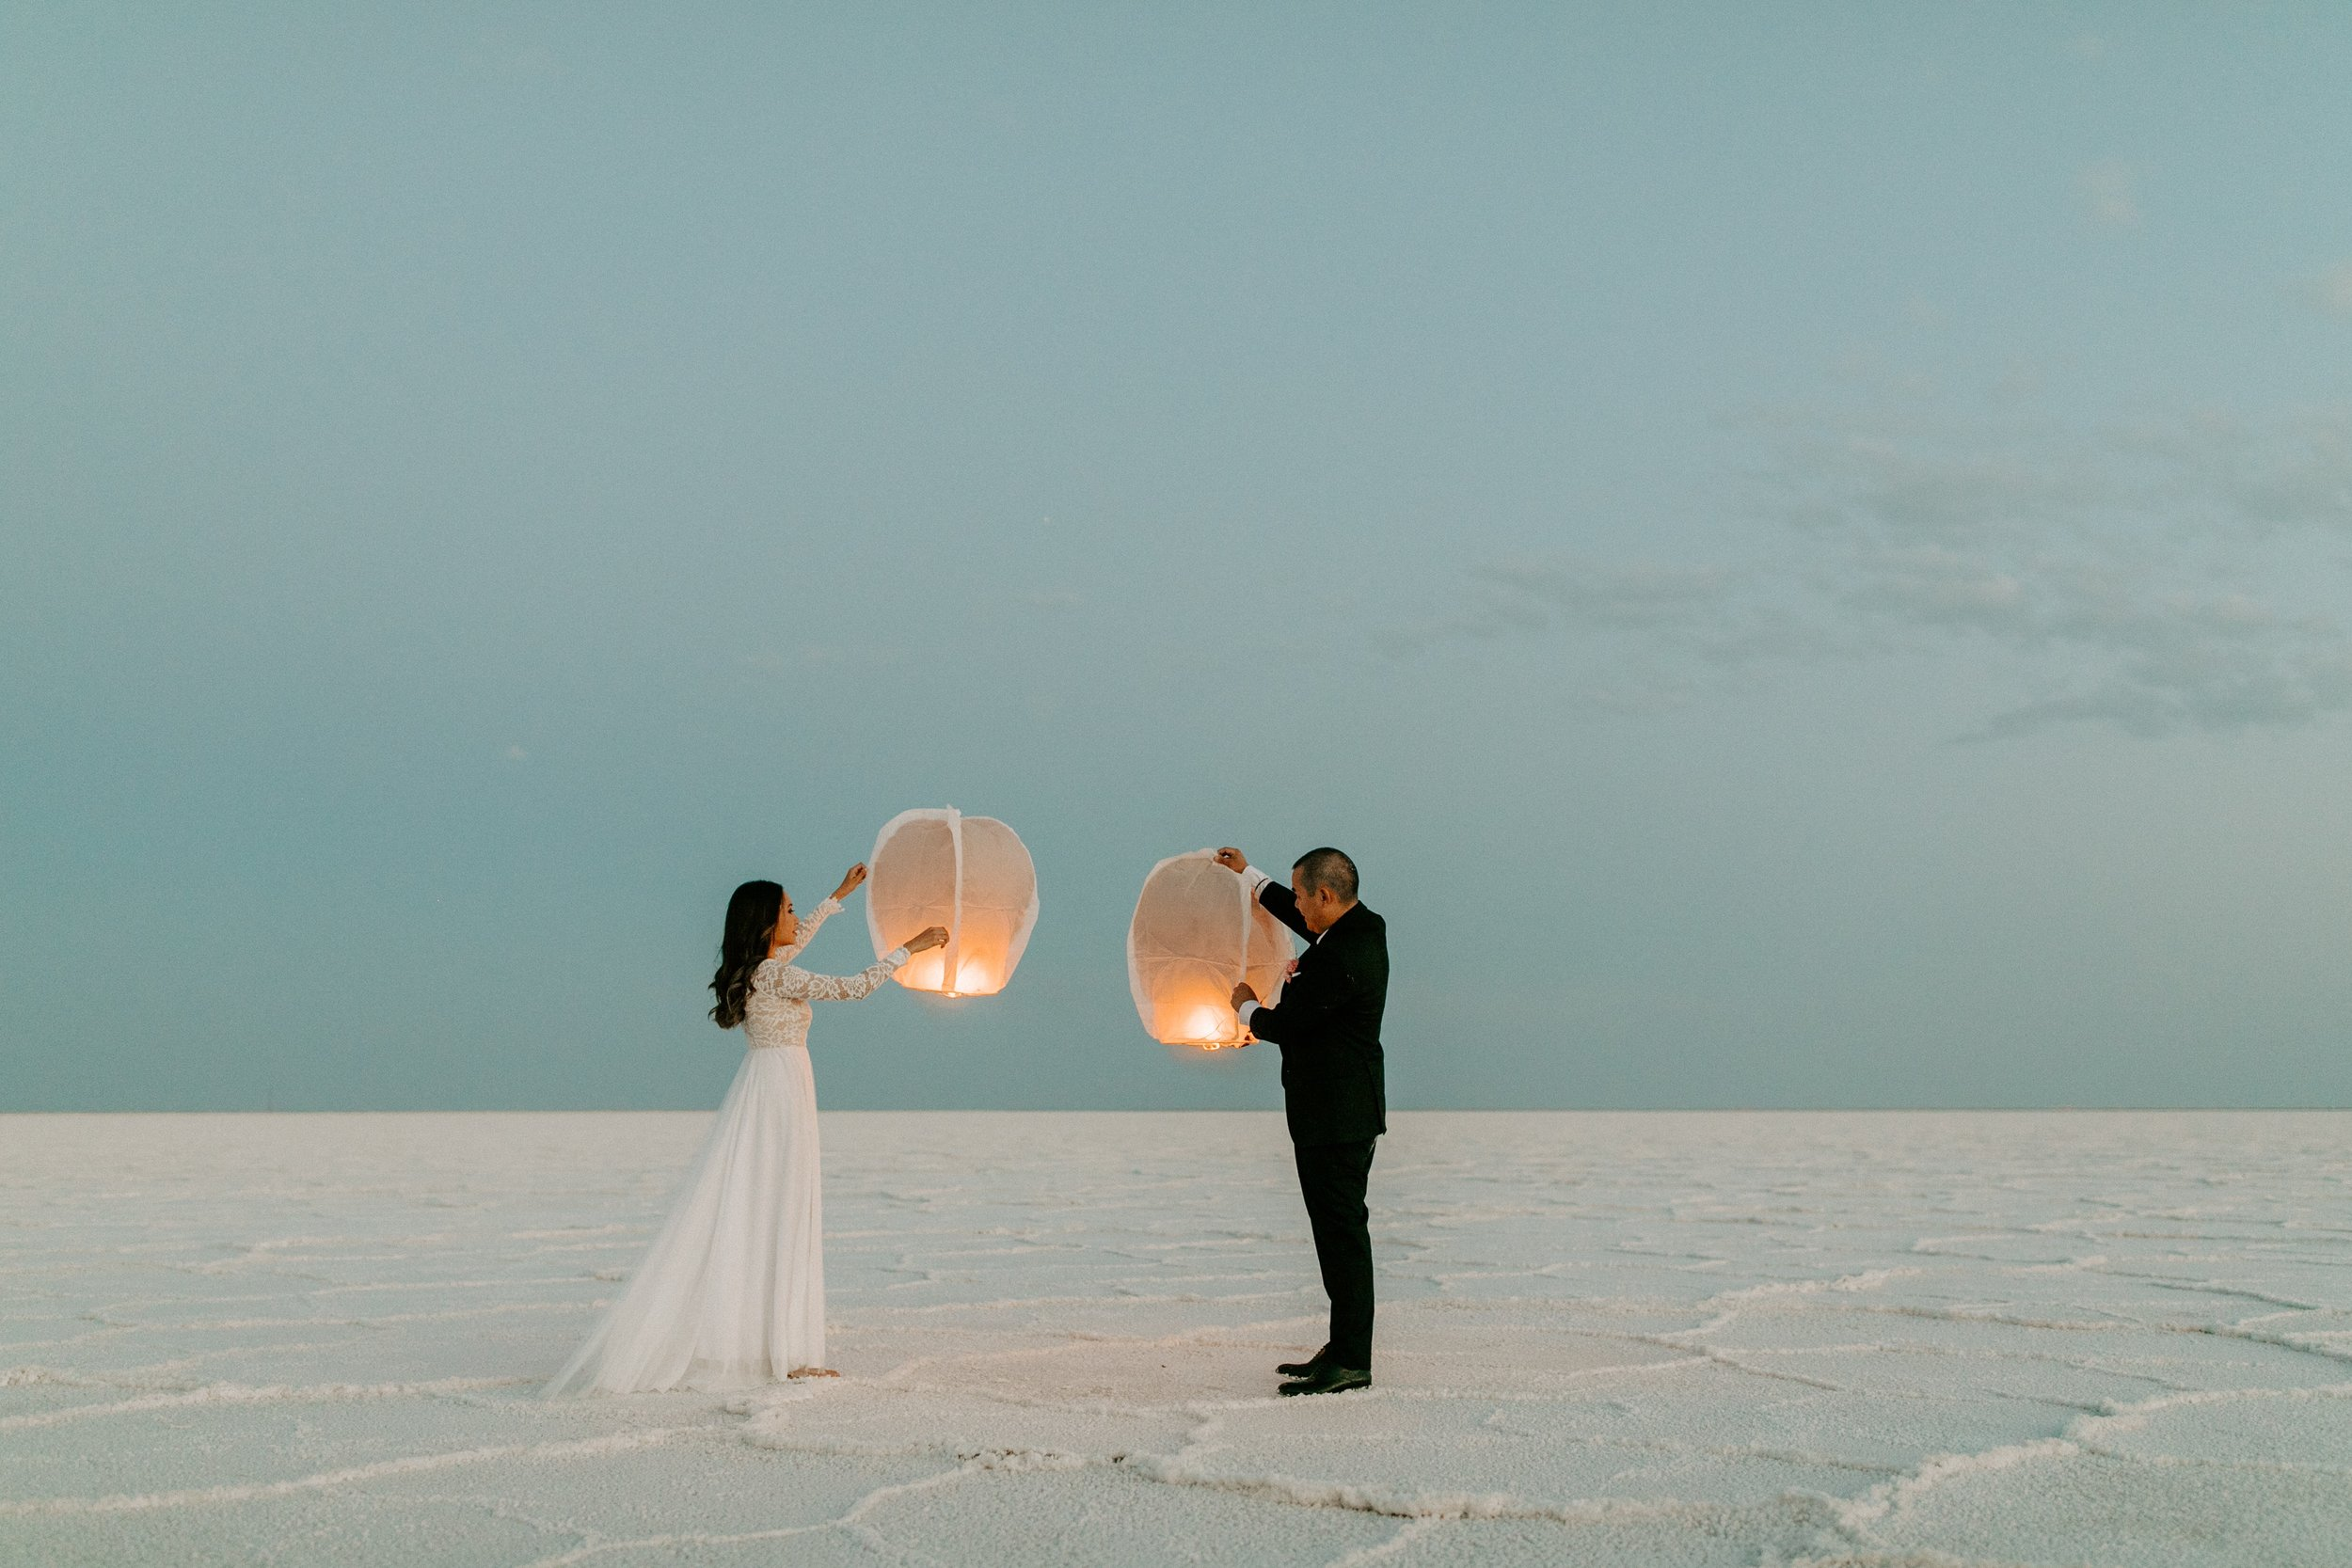 Salt Flats wedding with floating lanterns-Photography by Dawn Charles